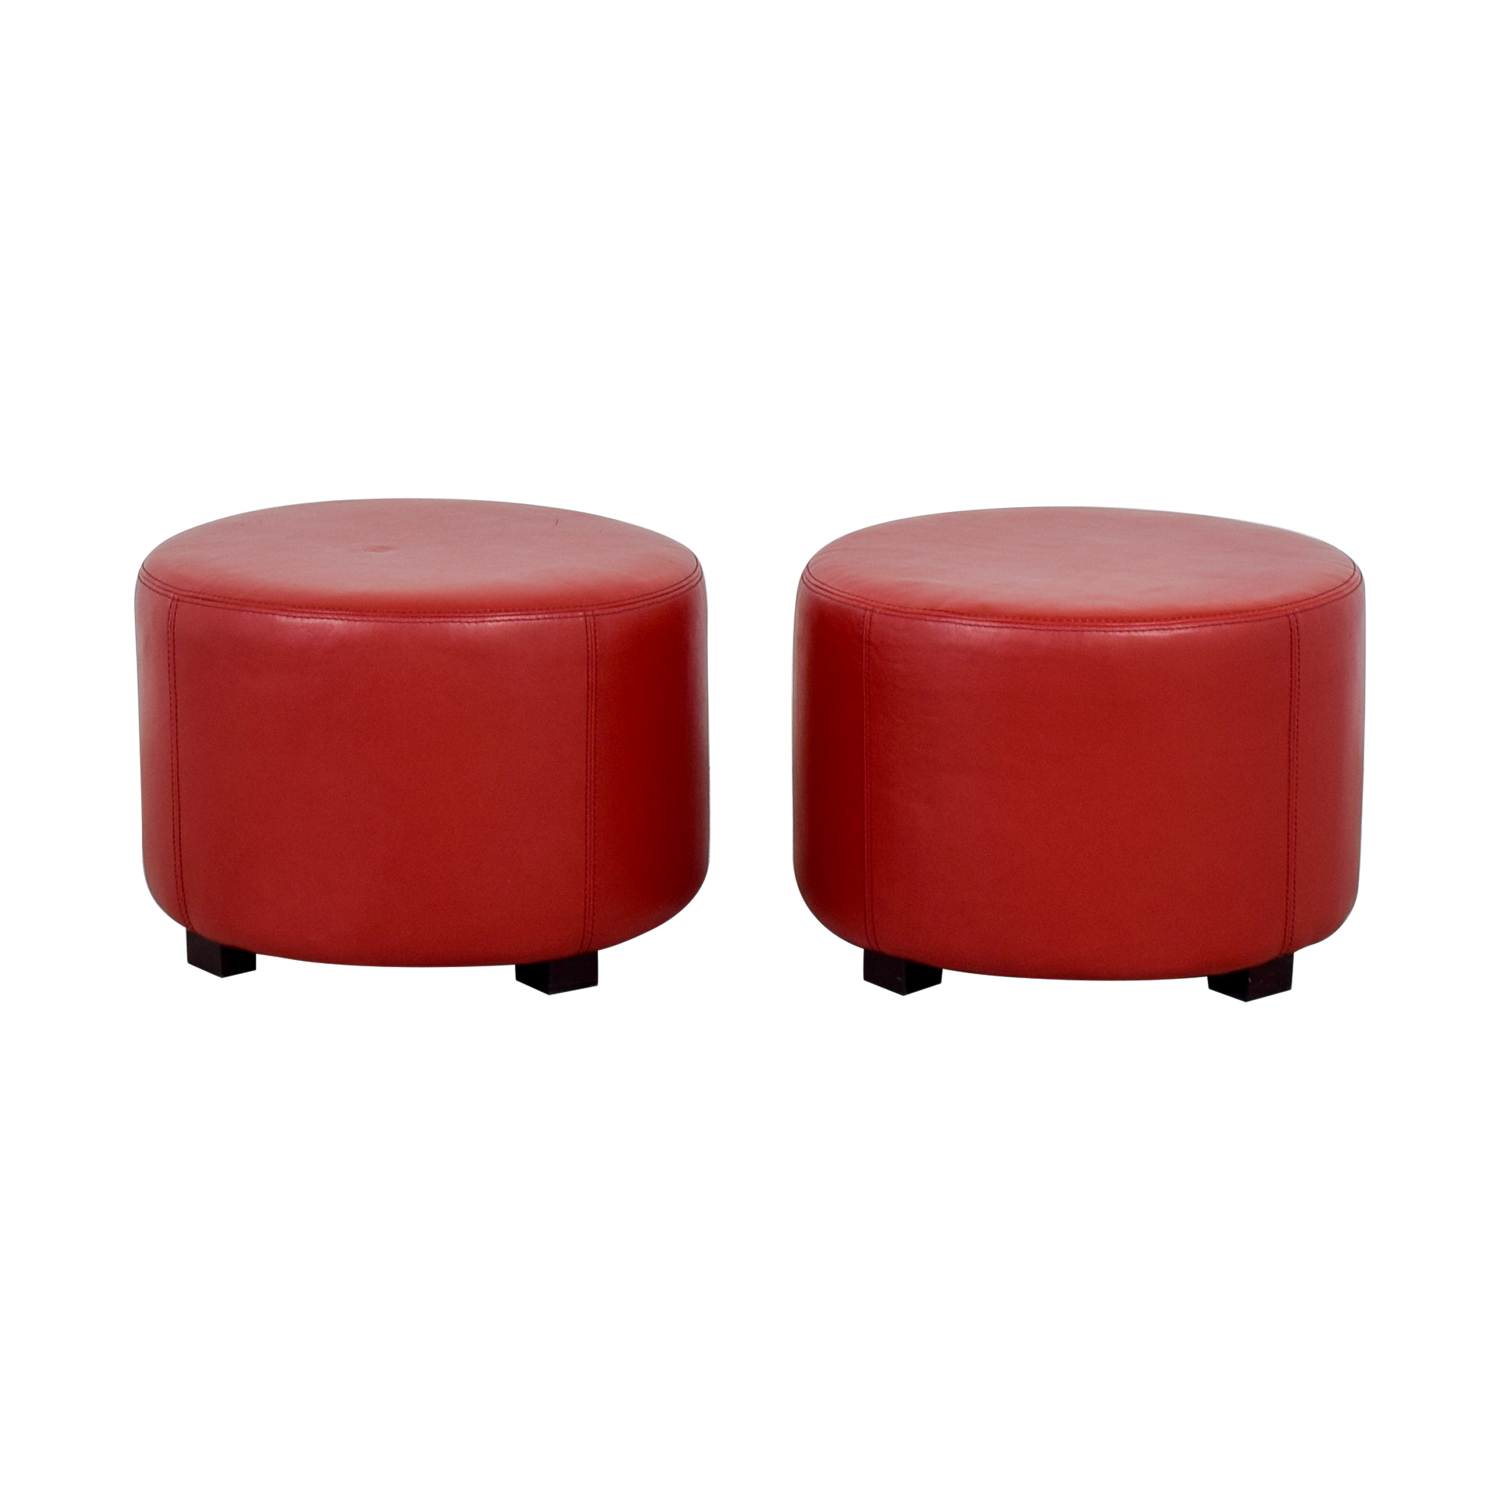 Round Red Leather Ottomans for sale